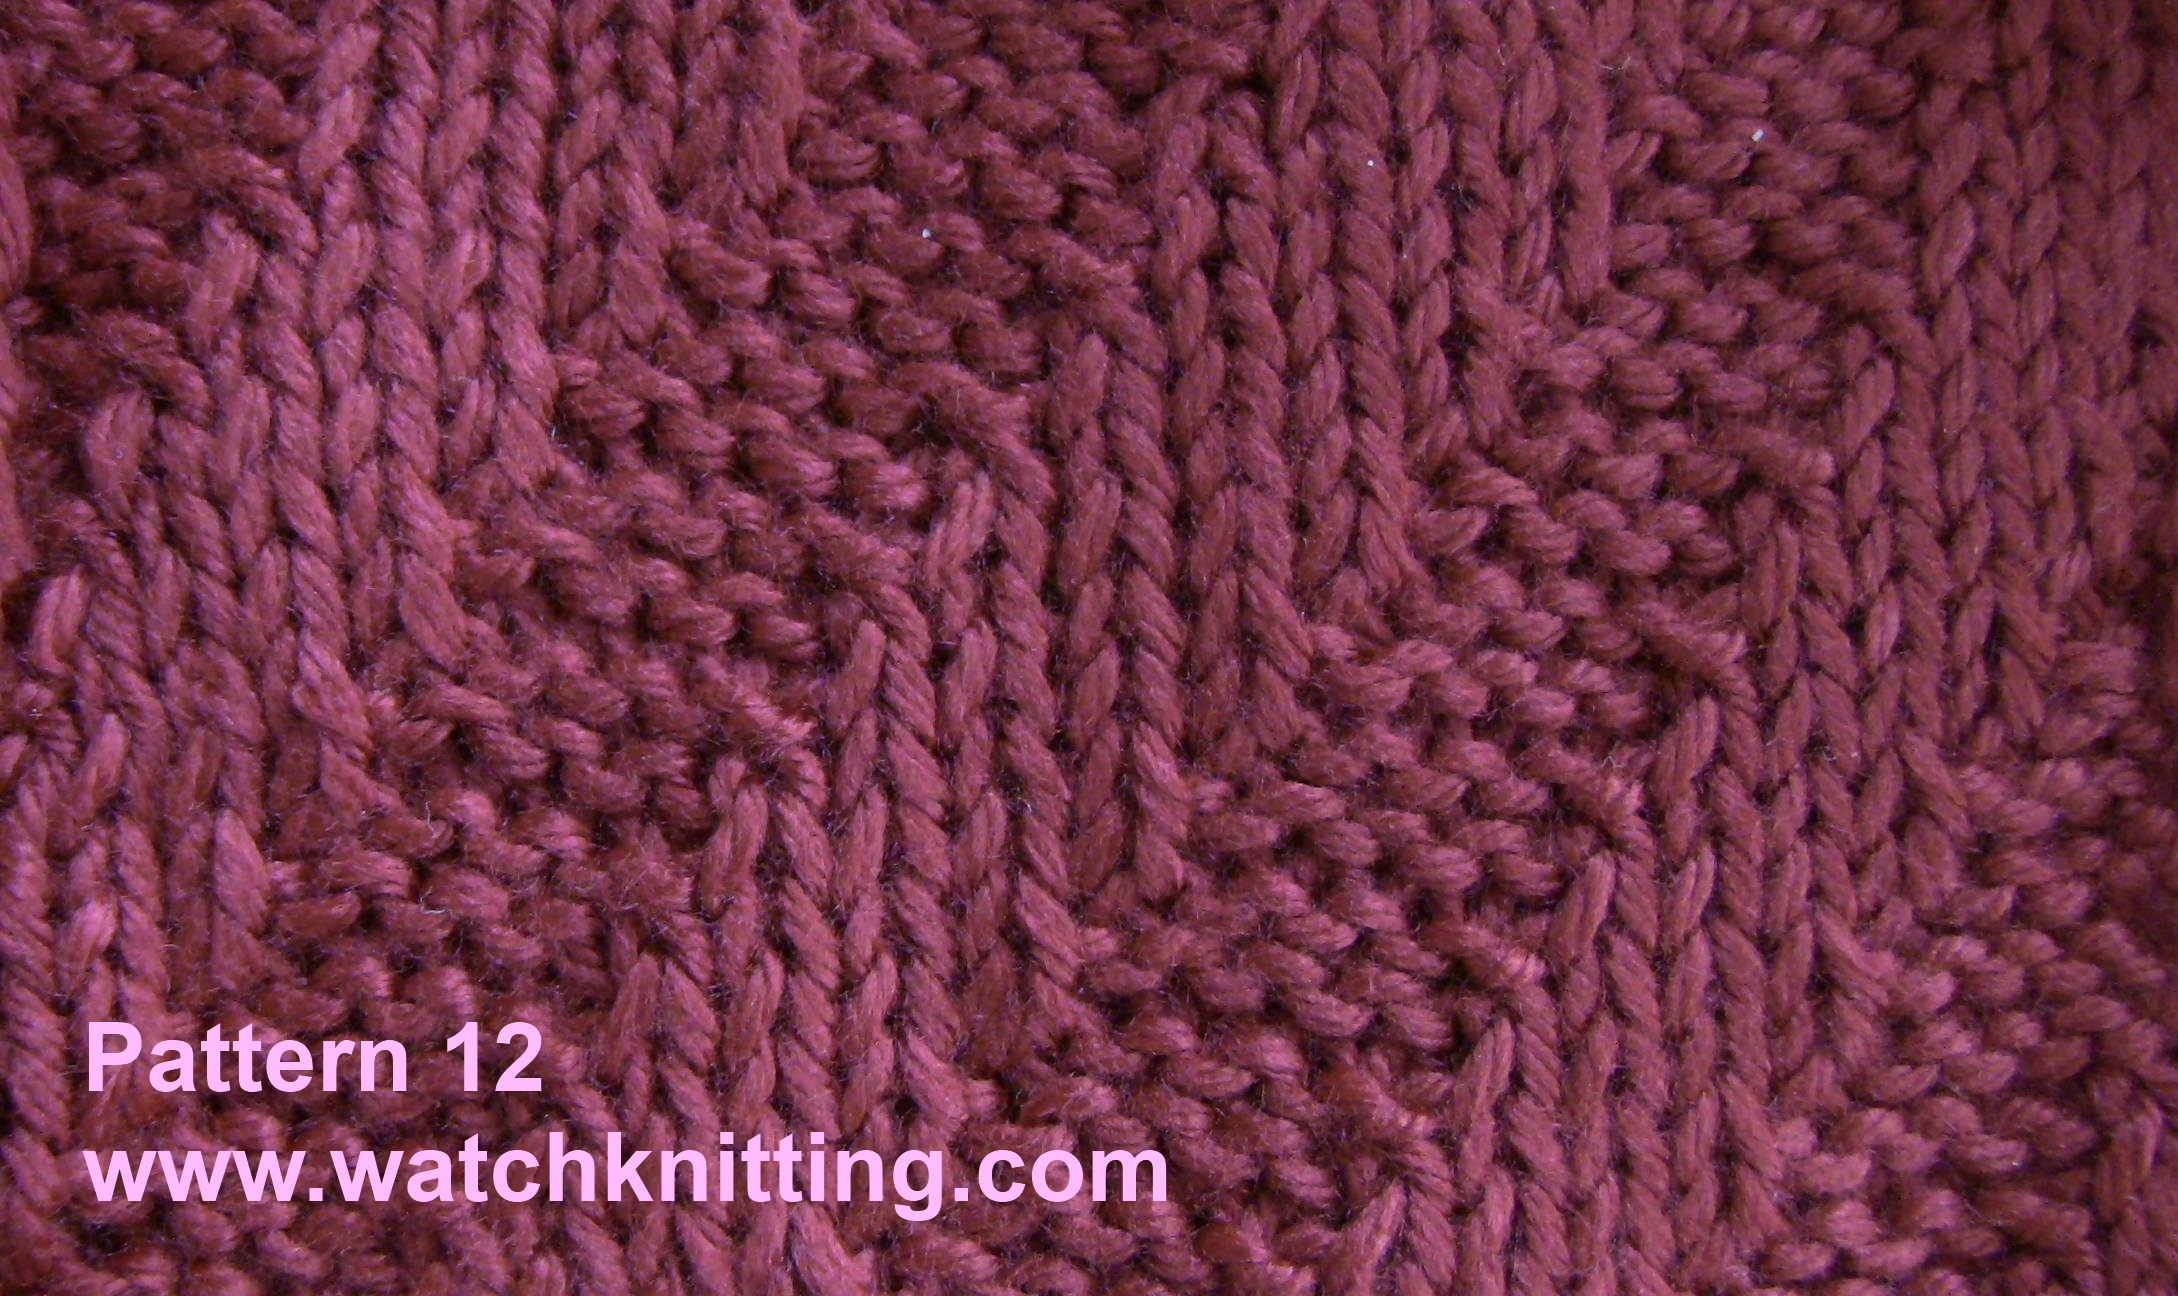 Easy Knitting Patterns : Pattern 12 Simple Knitting Patterns www.watchknitting.com